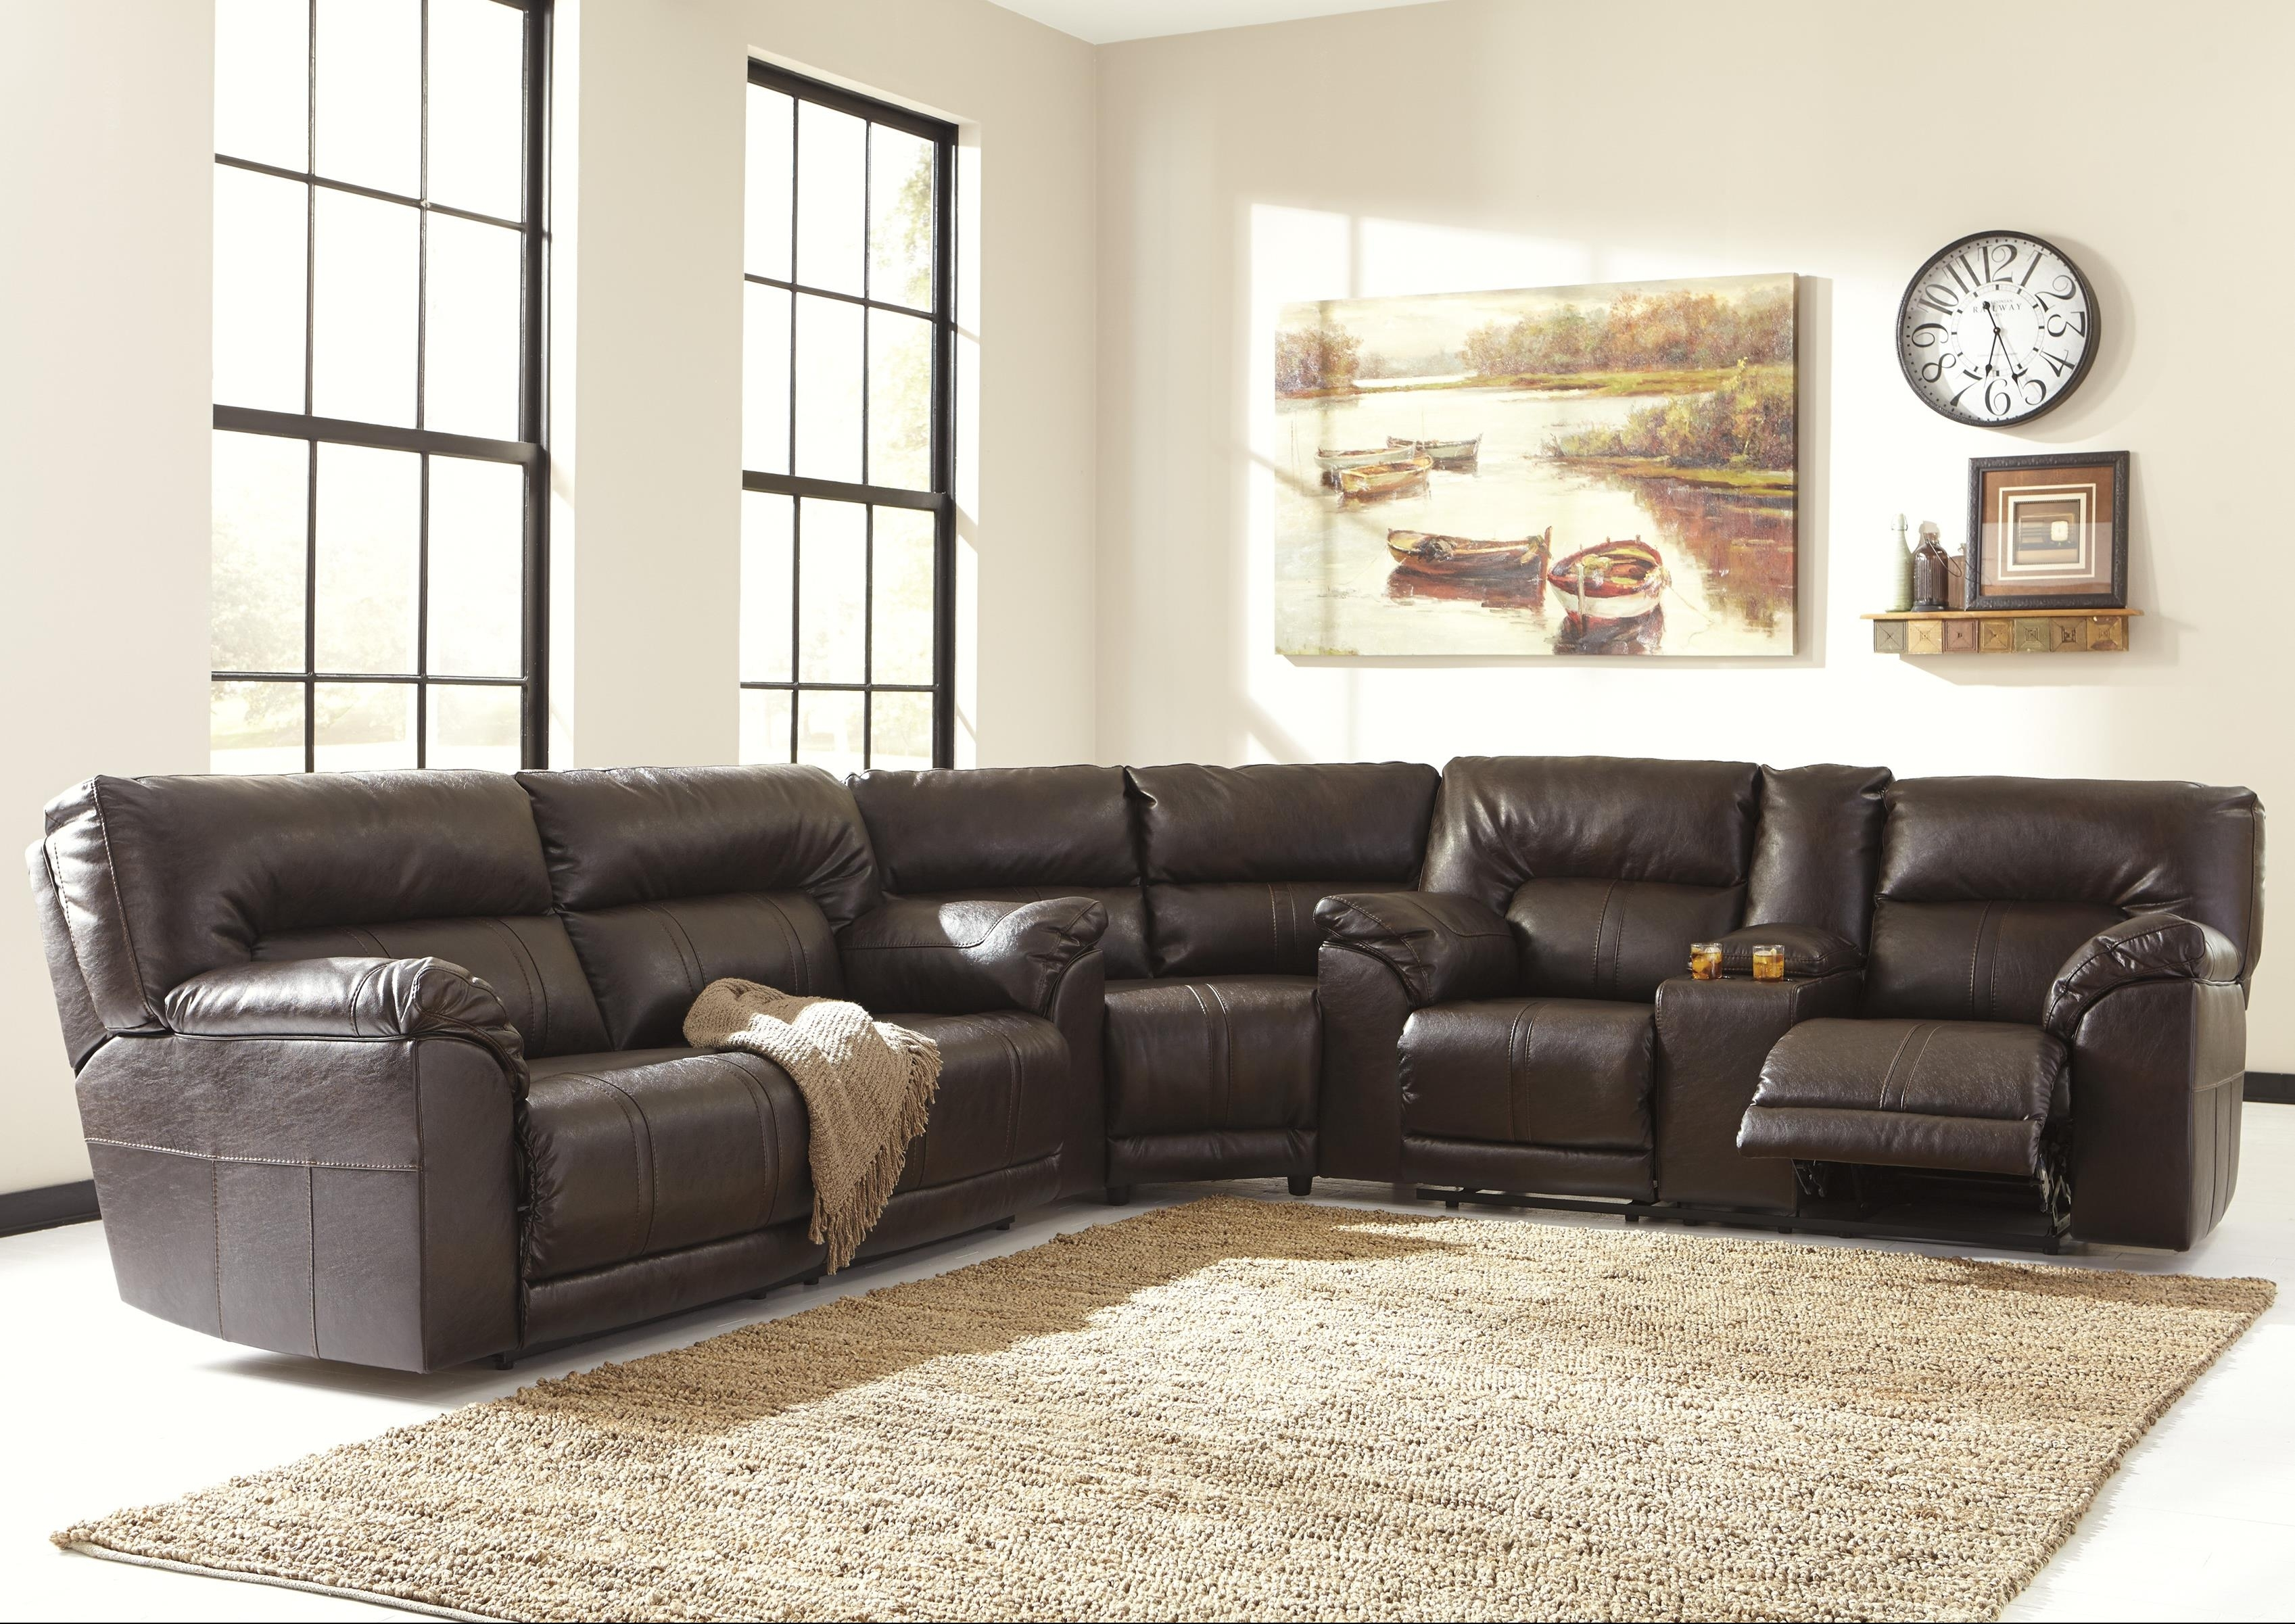 Benchcraftashley Barrettsville Durablend® 3-Piece Reclining with Reclining Sectional Sofas (Image 2 of 10)